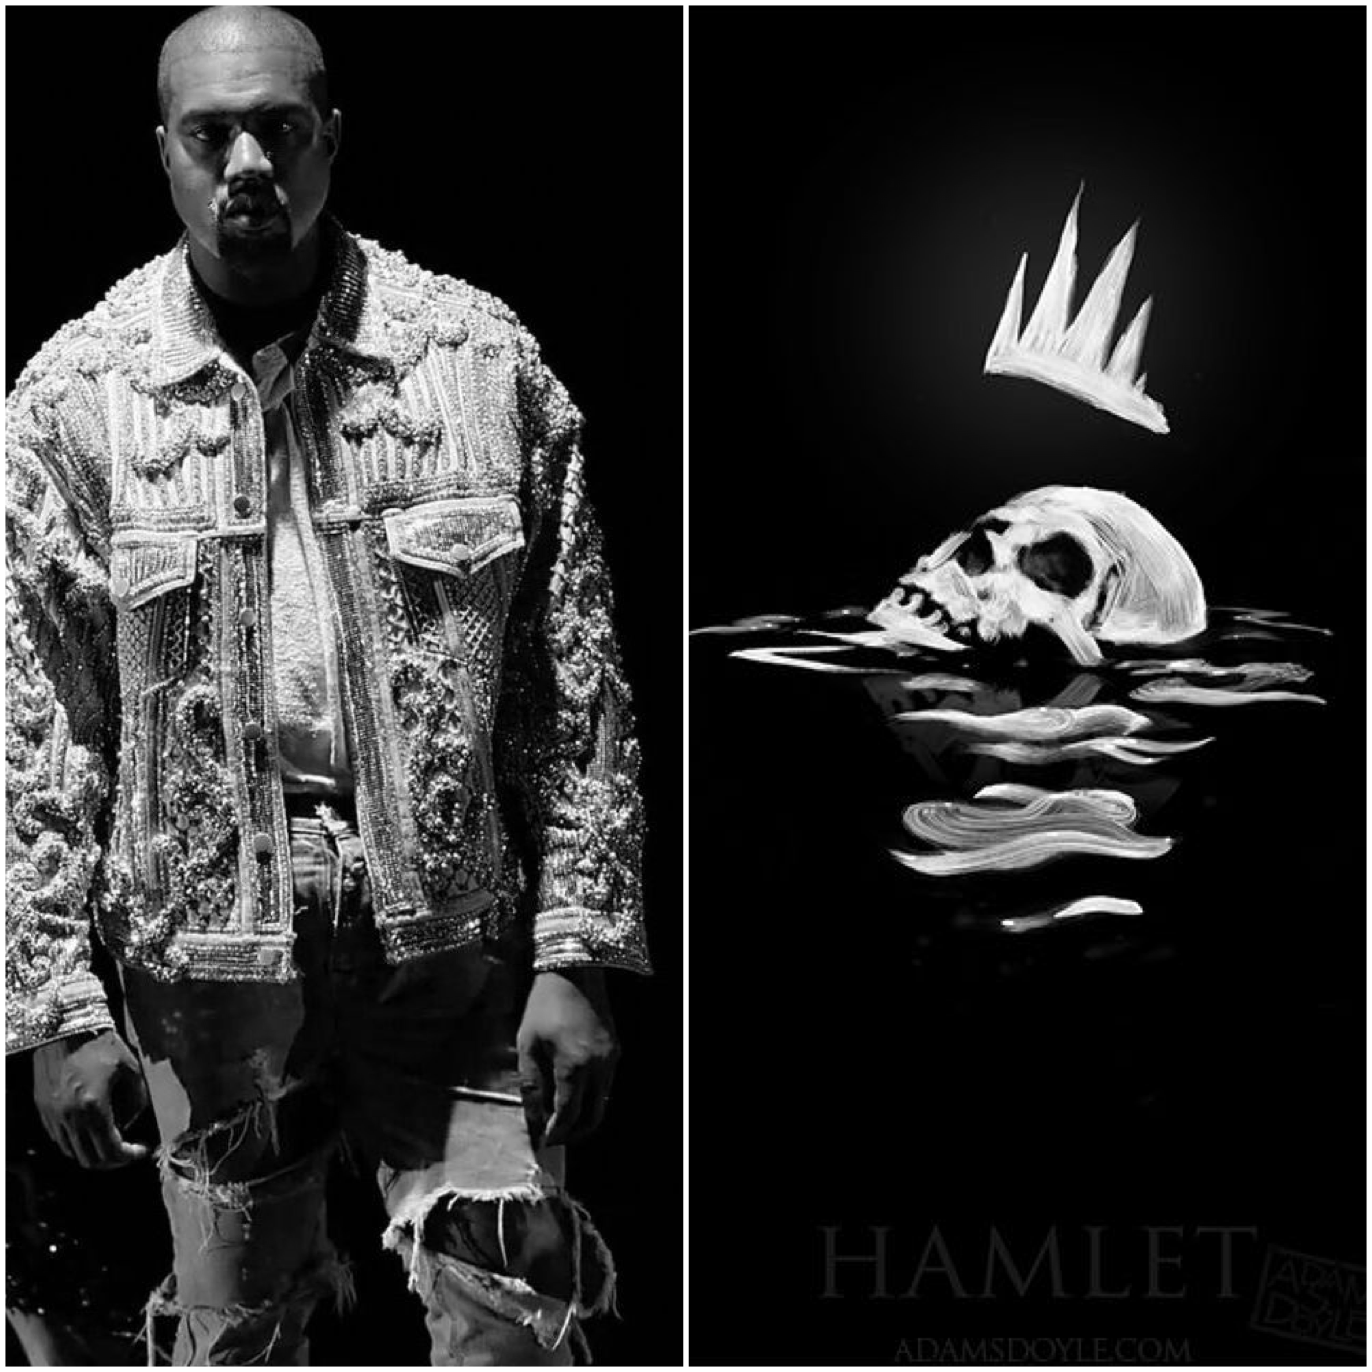 Hamlet v. Kanye - To be, or not to be v. I Thought About Killing You